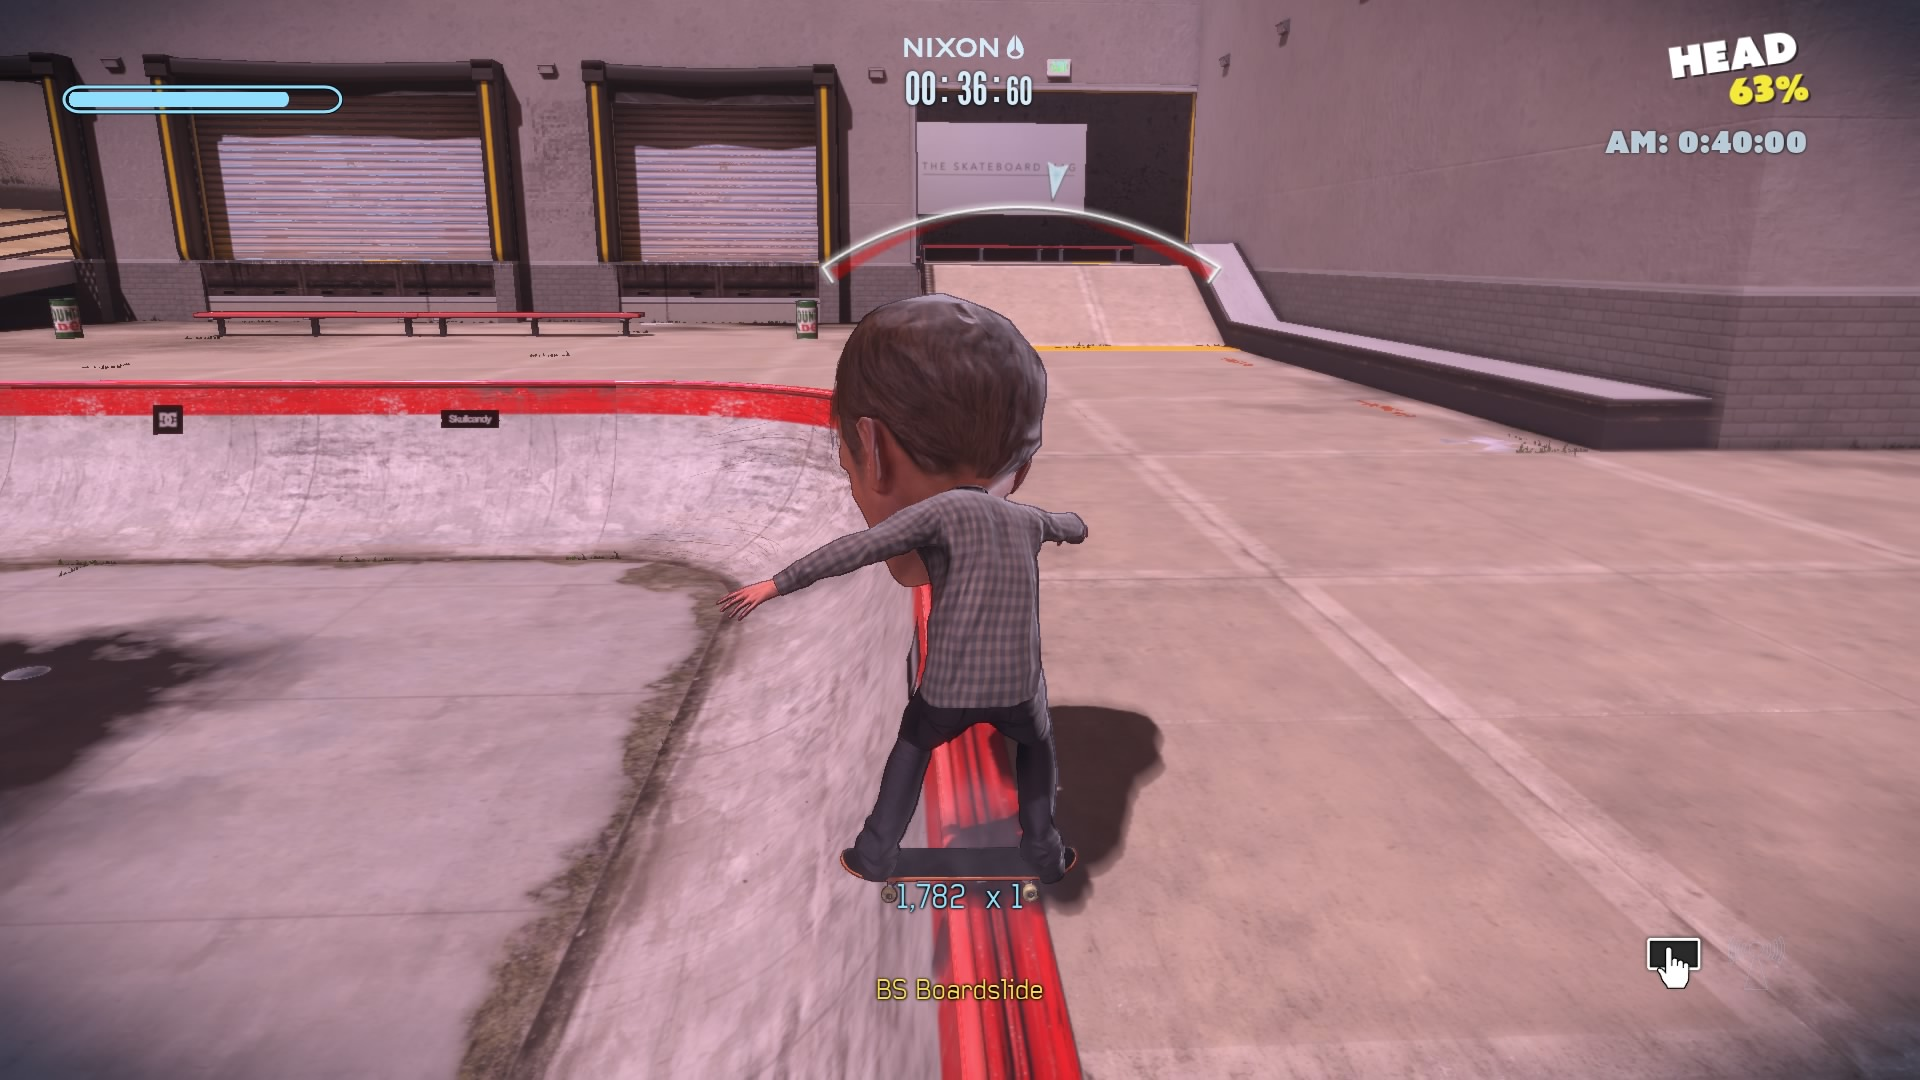 Tony Hawk's Pro Skater 5 Review Gallery